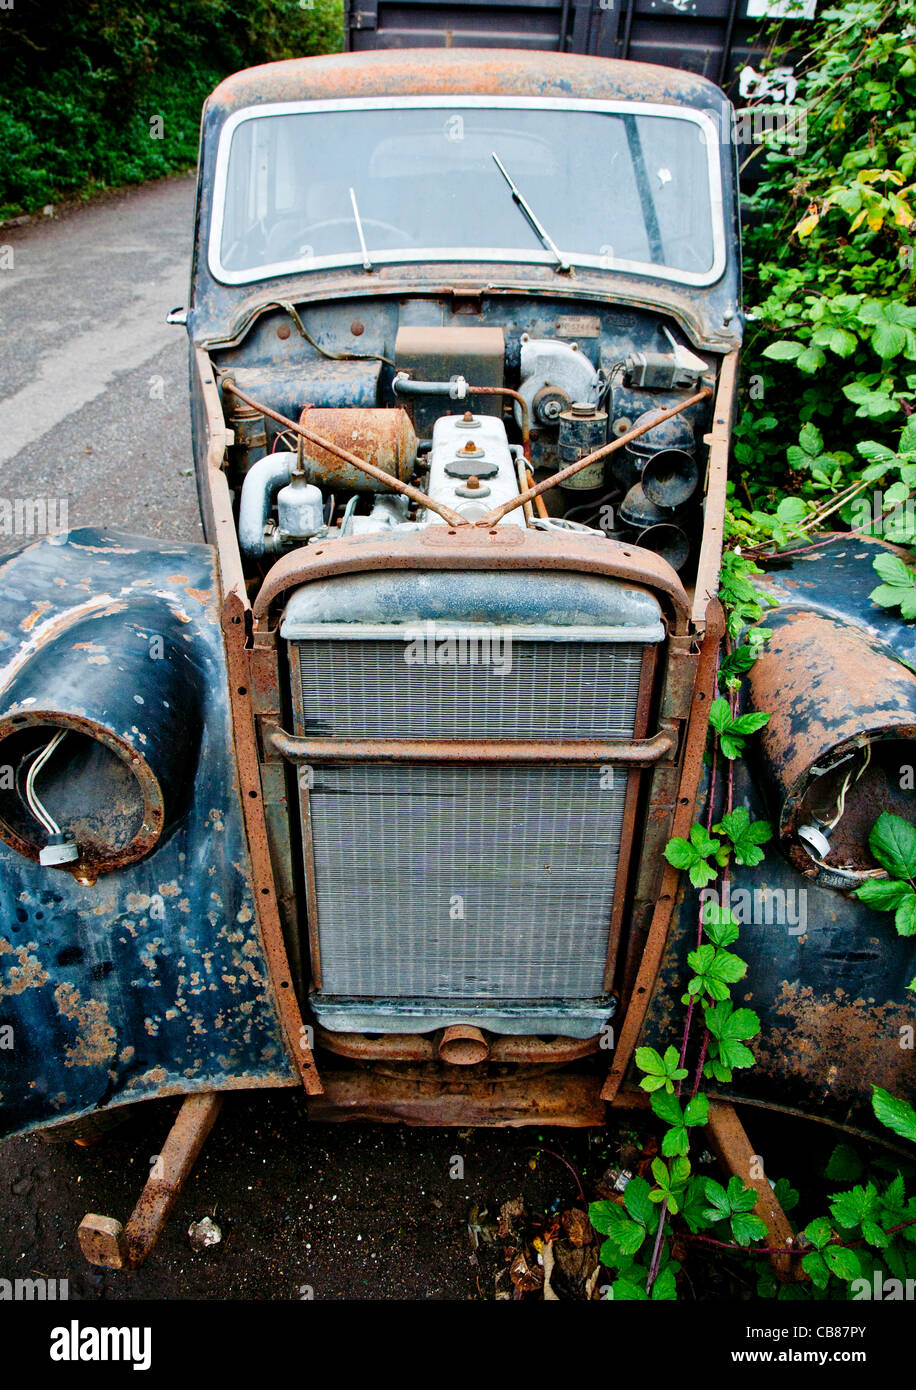 Old wrecked rusting motor car becoming overgrown with weeds - Stock Image